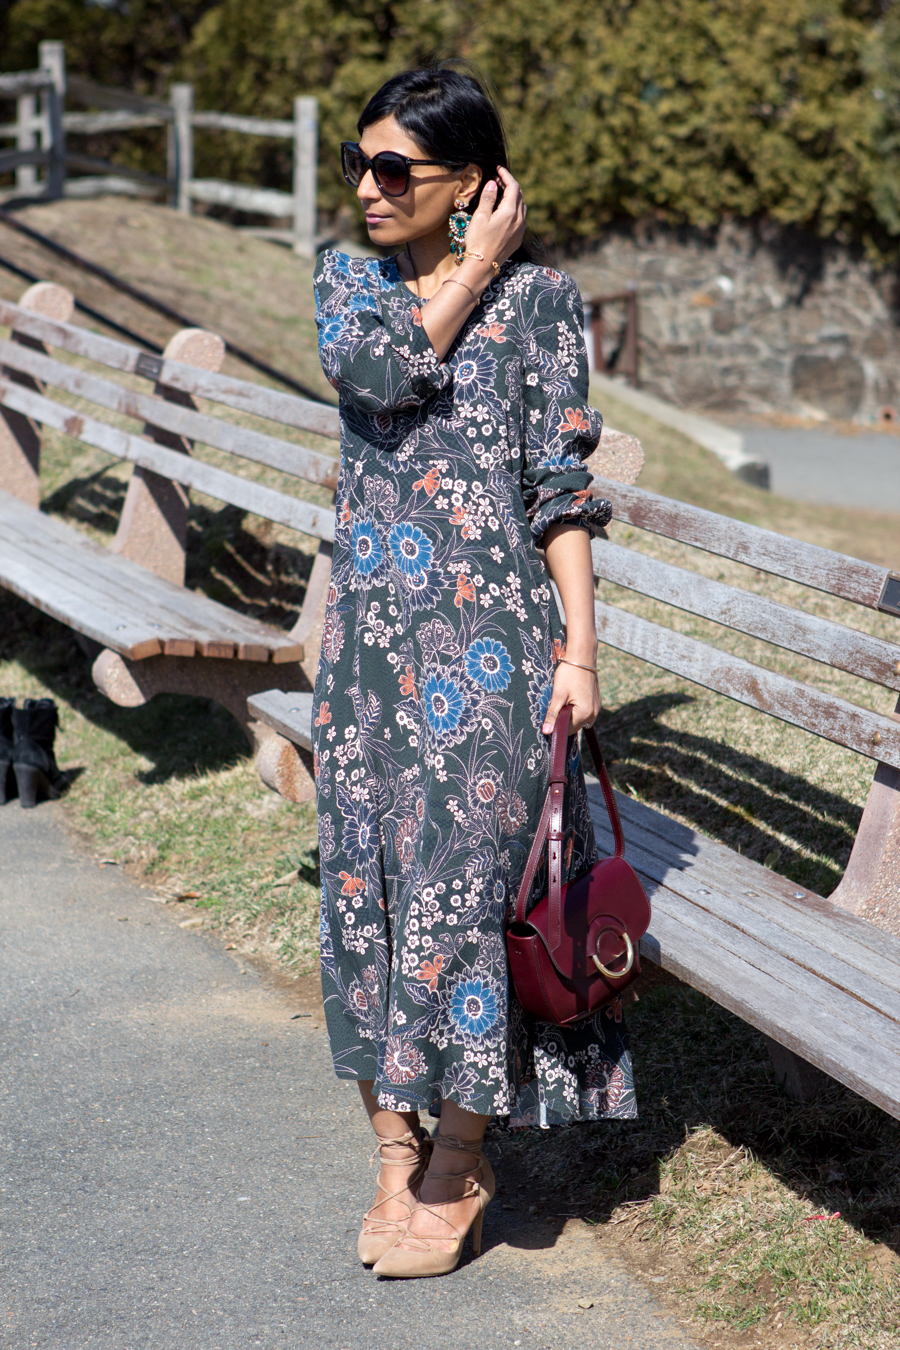 weekend look, indian style, asian fusion style, laceup pumps, floral maxi, maxi dress, statement earrings, crossbody bag, banana republic, vacation wear, weekend style, everyday style, glamorous, feminine style, flowy dress